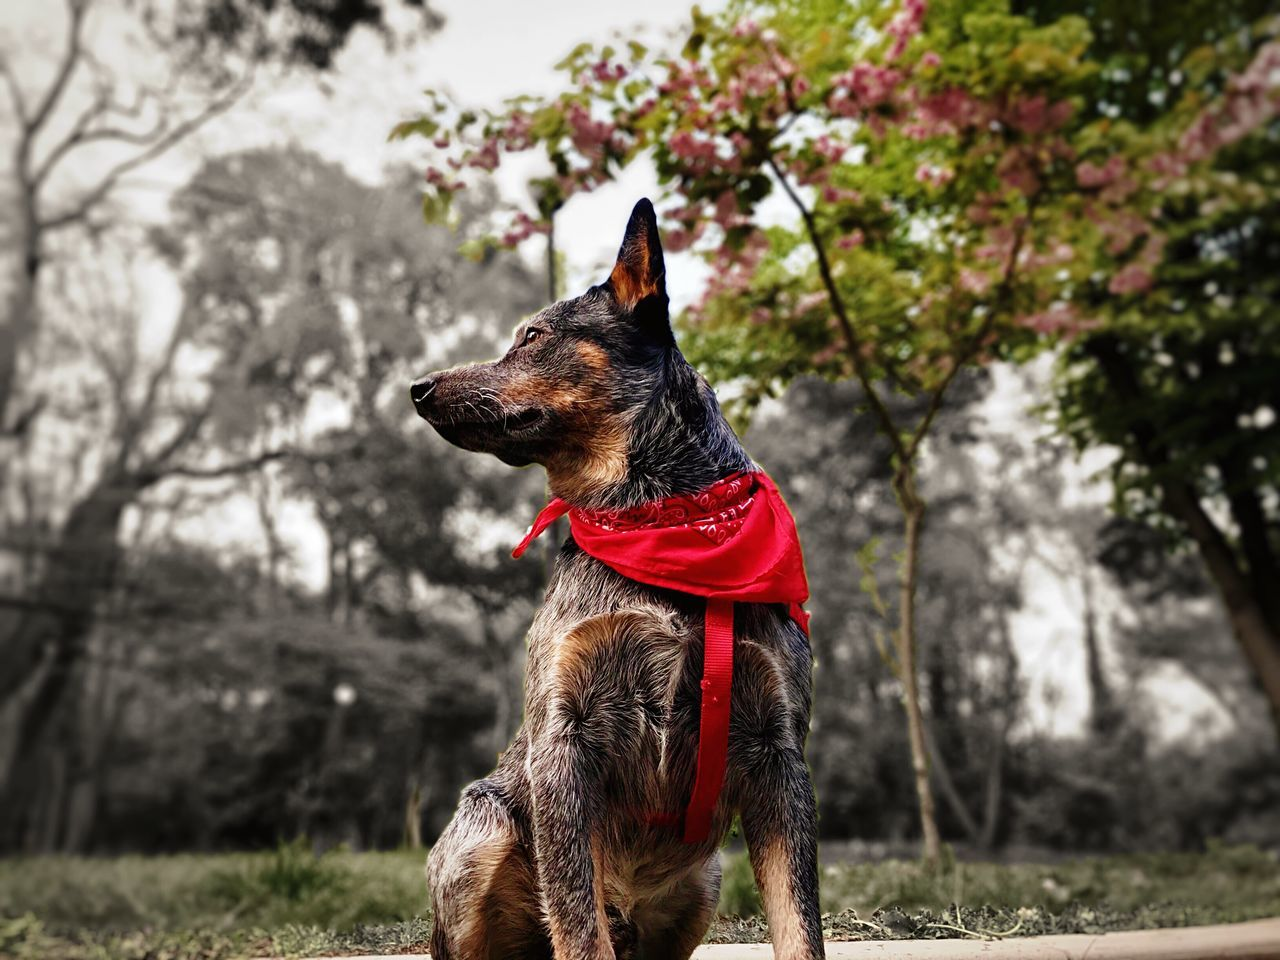 Nature blossoms and Dino enjoys it Dog Pets Domestic Animals One Animal Animal Themes Pet Collar Focus On Foreground Outdoors Mammal Tree Day No People Sitting Nature Spring Springtime Blue Heeler Australian Cattle Dog Bandana The Great Outdoors - 2017 EyeEm Awards